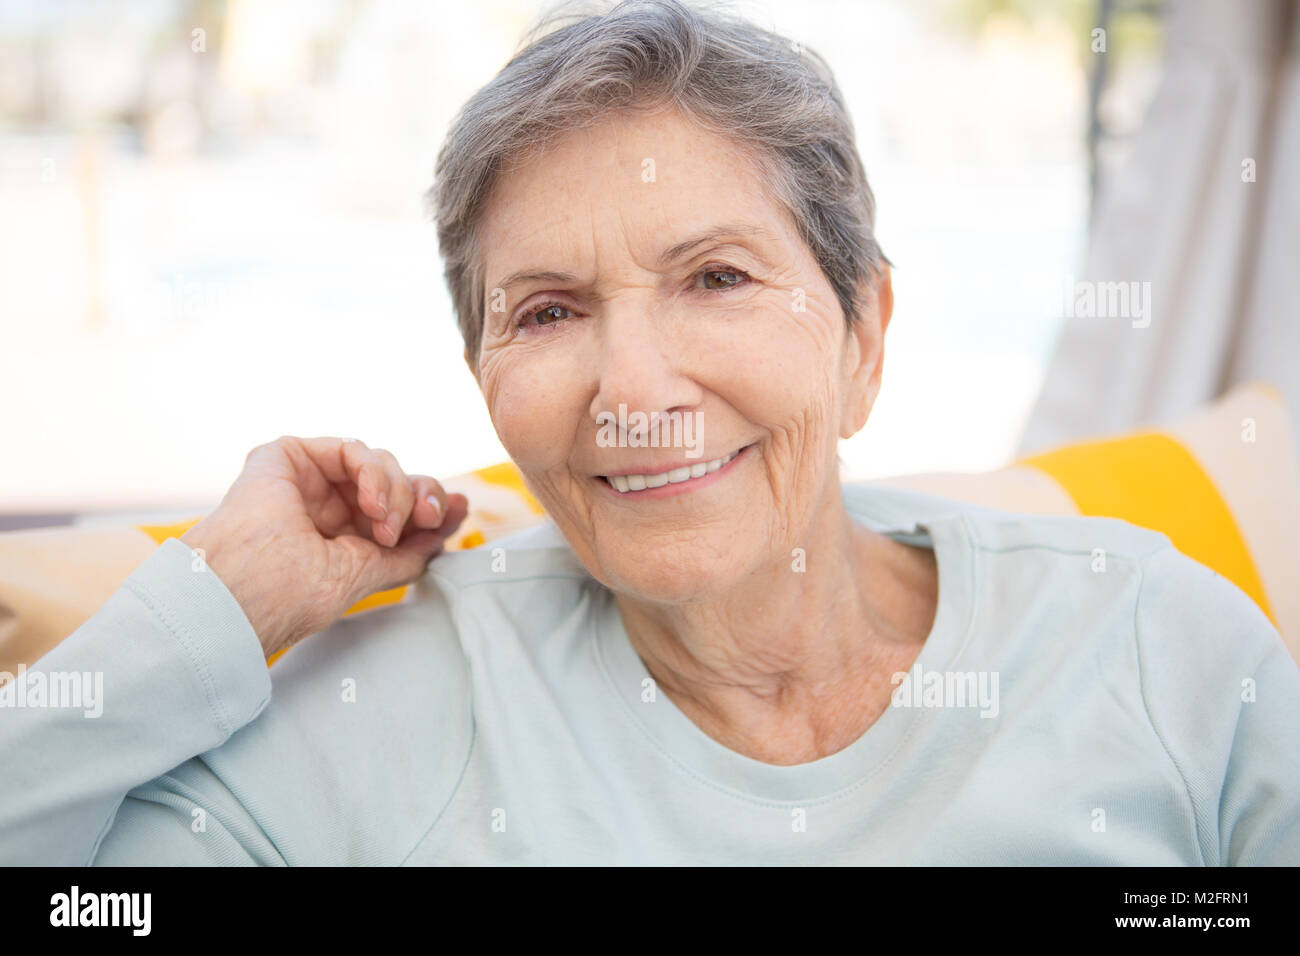 Portrait of a mature elderly woman smiling. - Stock Image